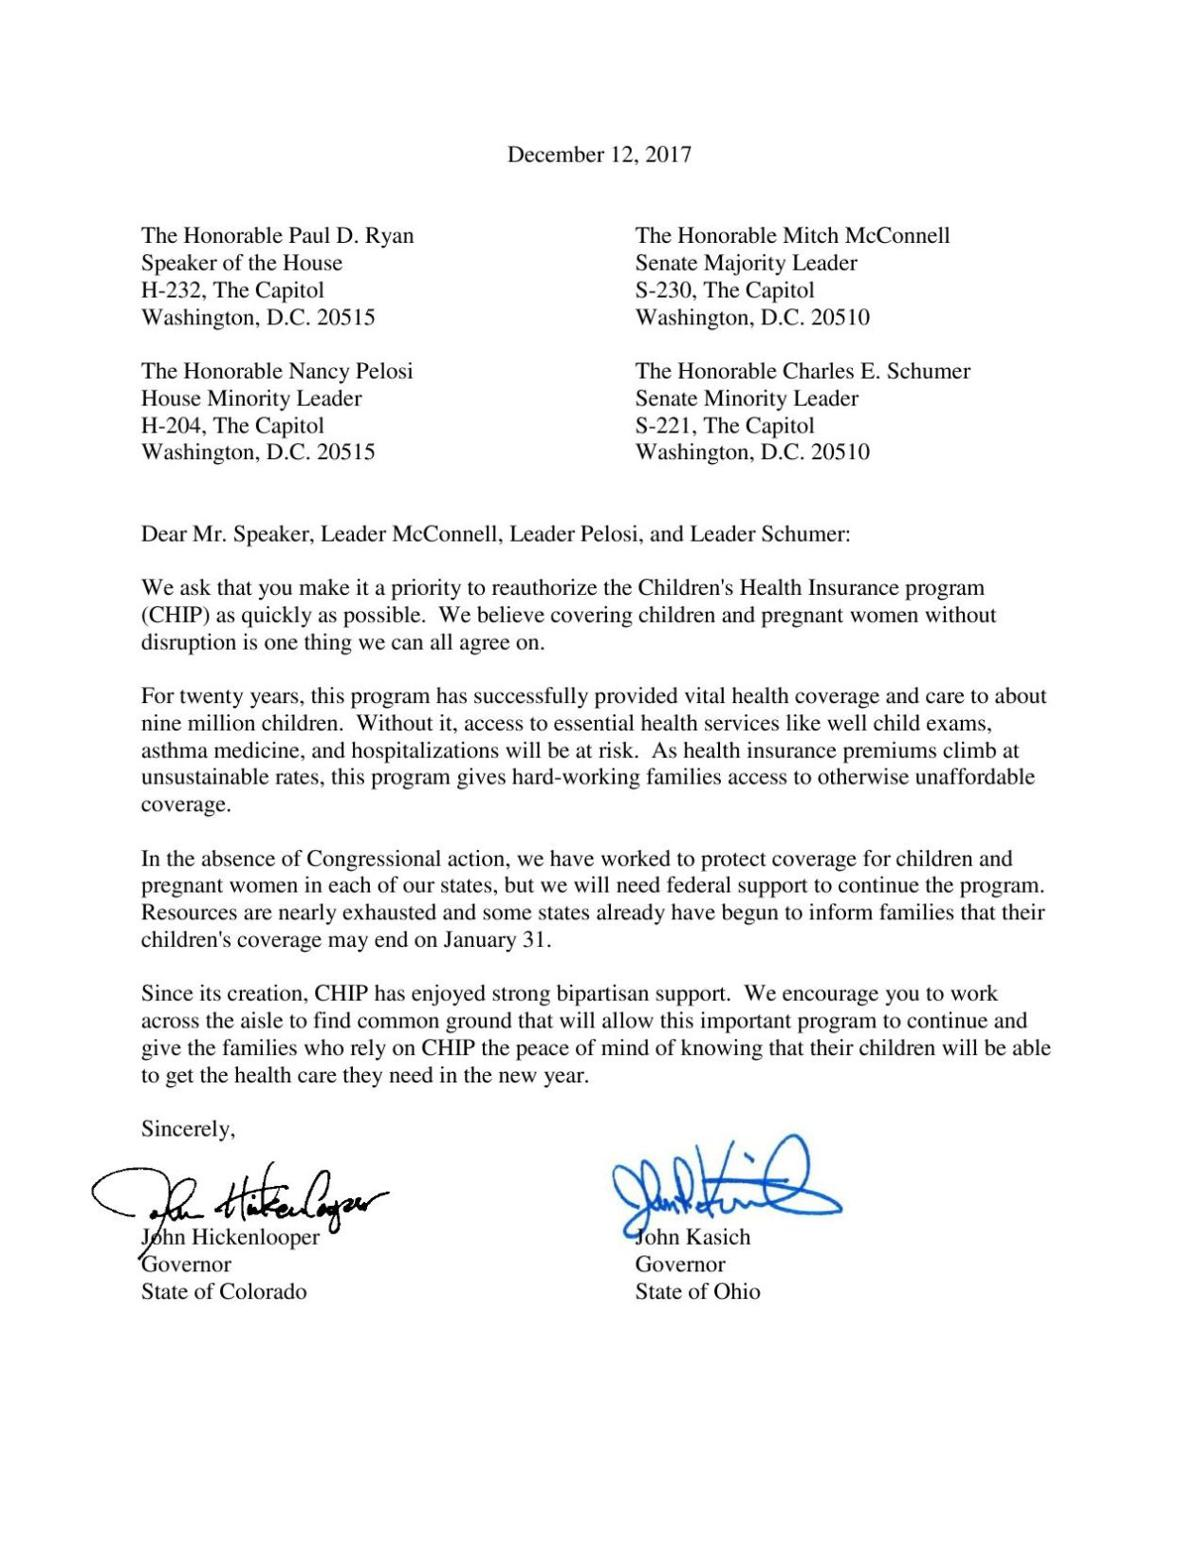 PDF: Read the letter Governors sent to Congress about CHIP